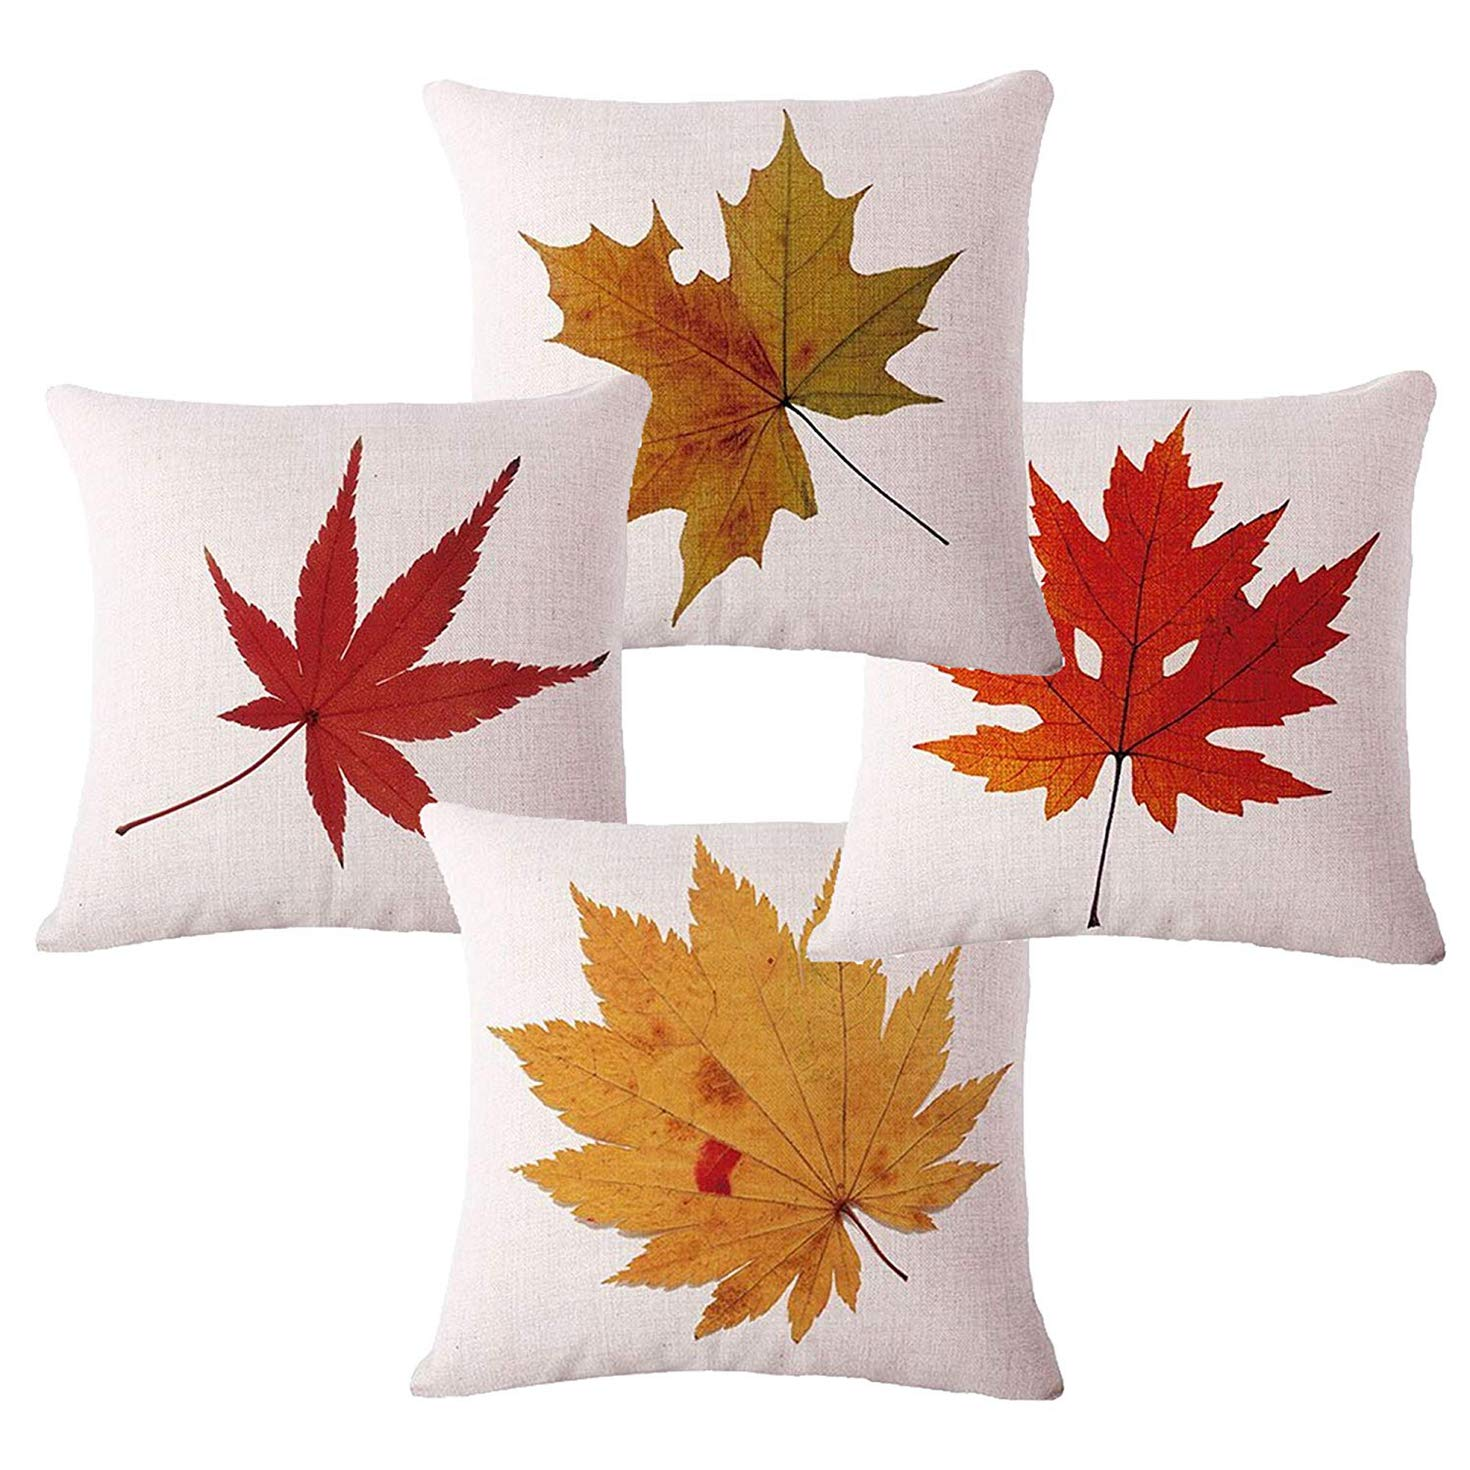 Sufam Set Of 4 Pillow Cases Autumn Cozy Fall Red And Gold Maple Leaves Seasonal Modern Simple Pastoral Throw Pillowcase Cover Cushion Case Home Decor 16x16 Inch Walmart Com Walmart Com